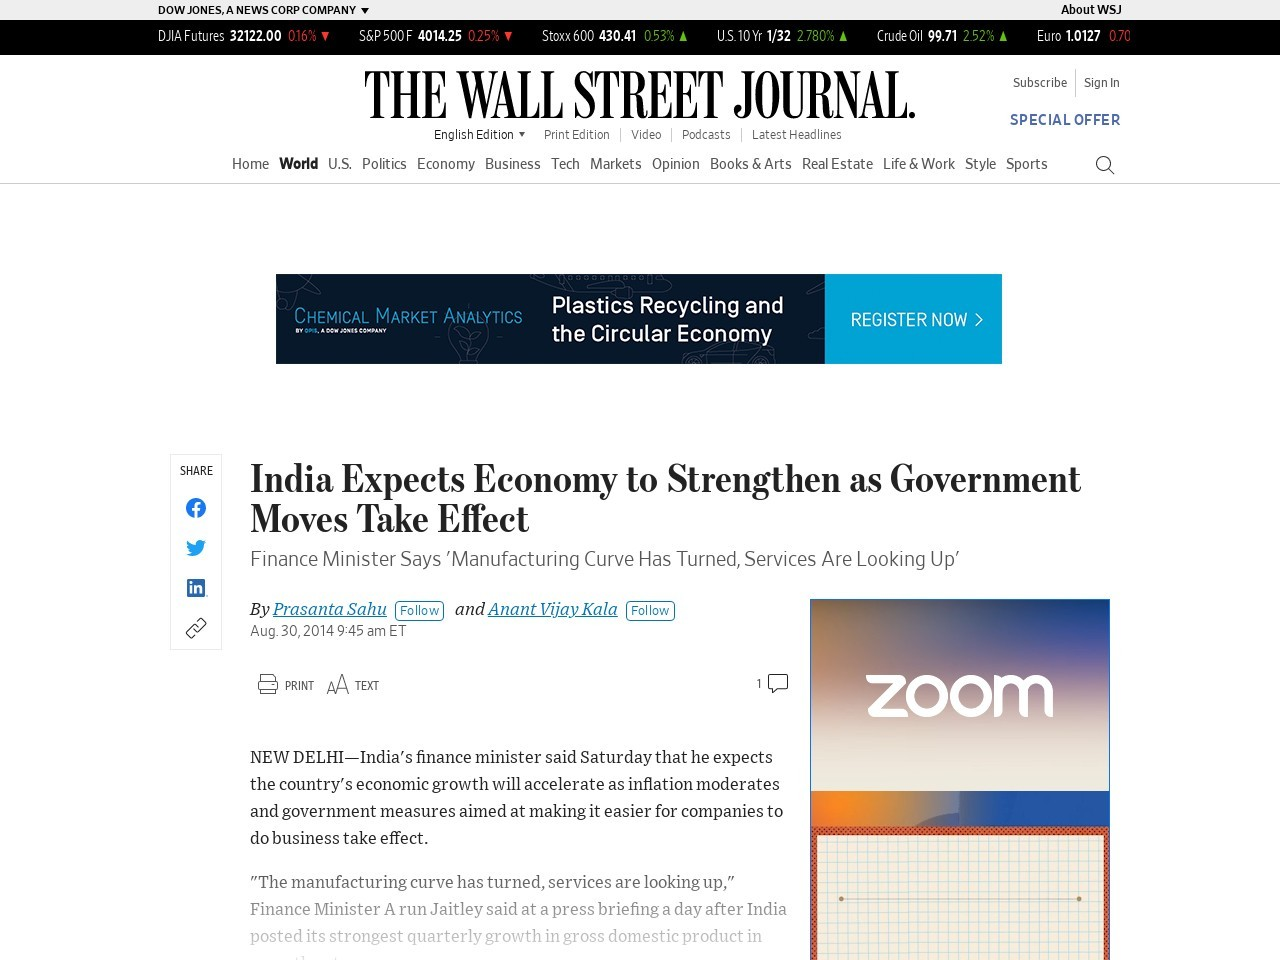 India Expects Economy to Strengthen as Government Moves Take Effect